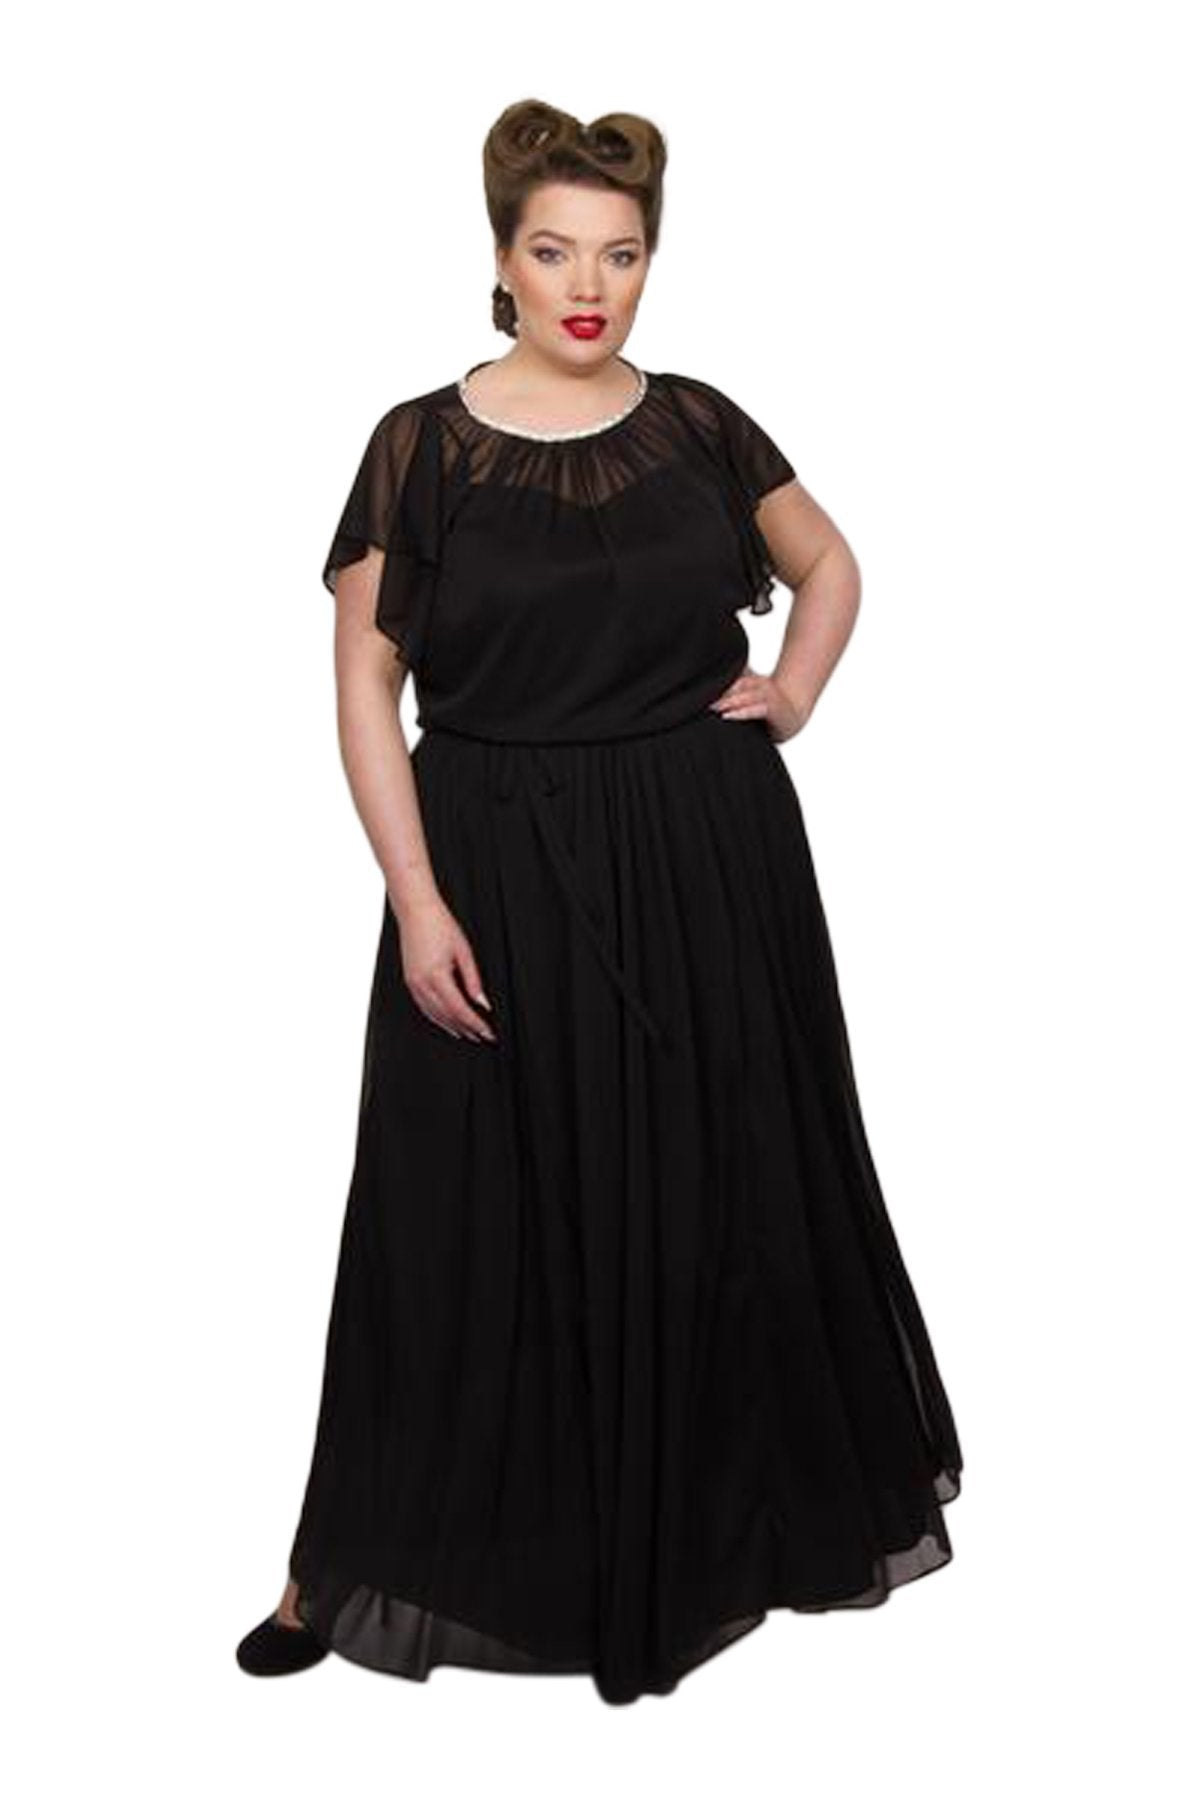 60s 70s Plus Size Dresses, Clothing, Costumes Chiffon Maxi Dress - Black  24 �75.00 AT vintagedancer.com